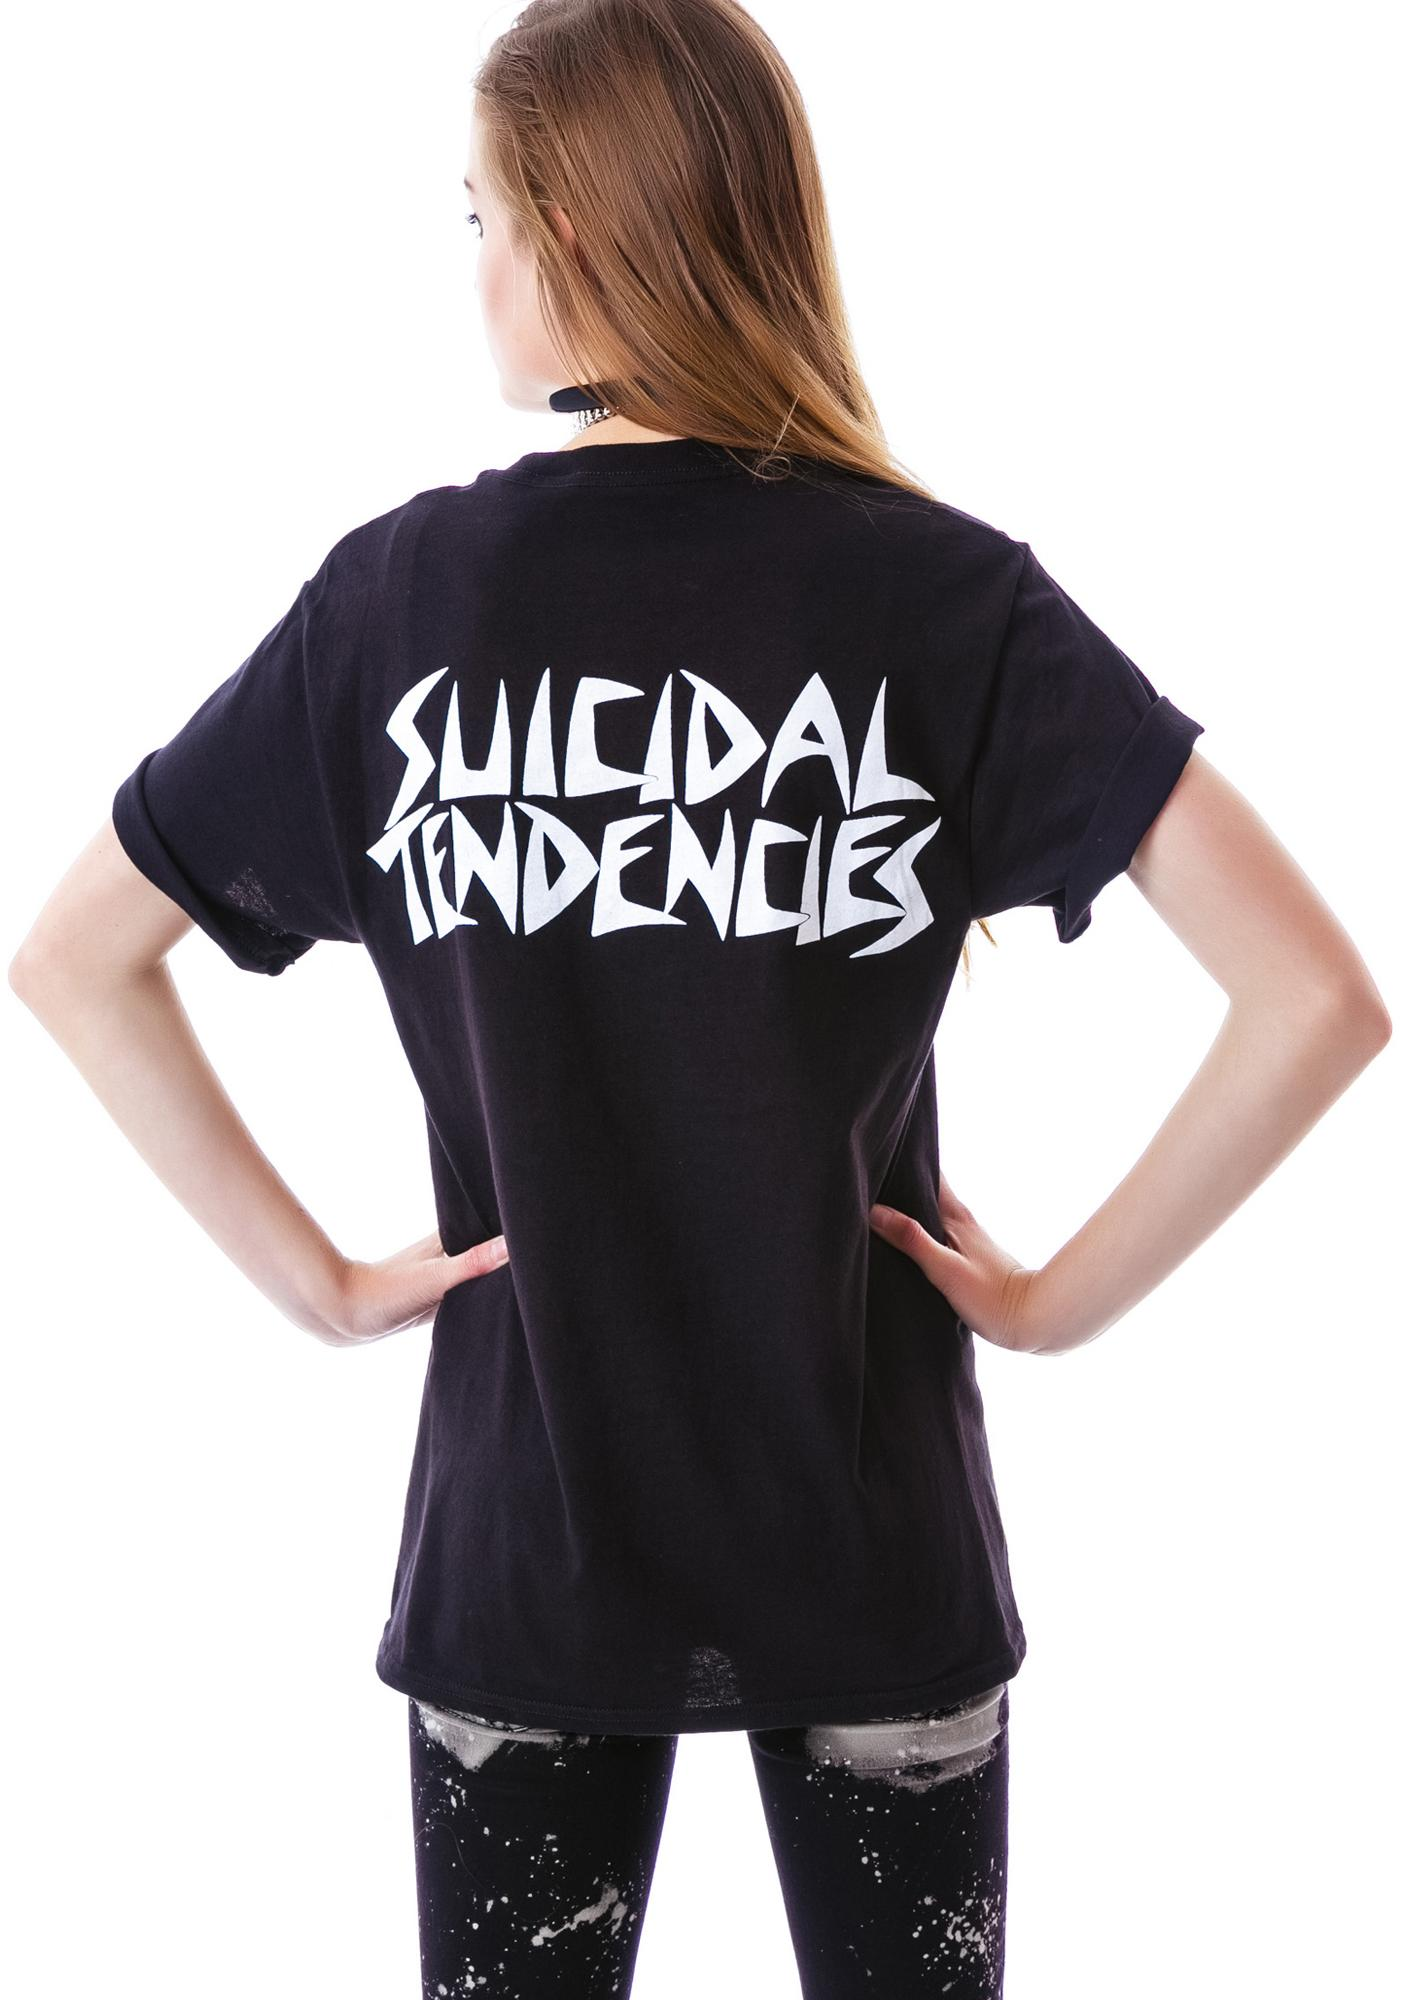 Suicidal Tendencies Possessed Shirt